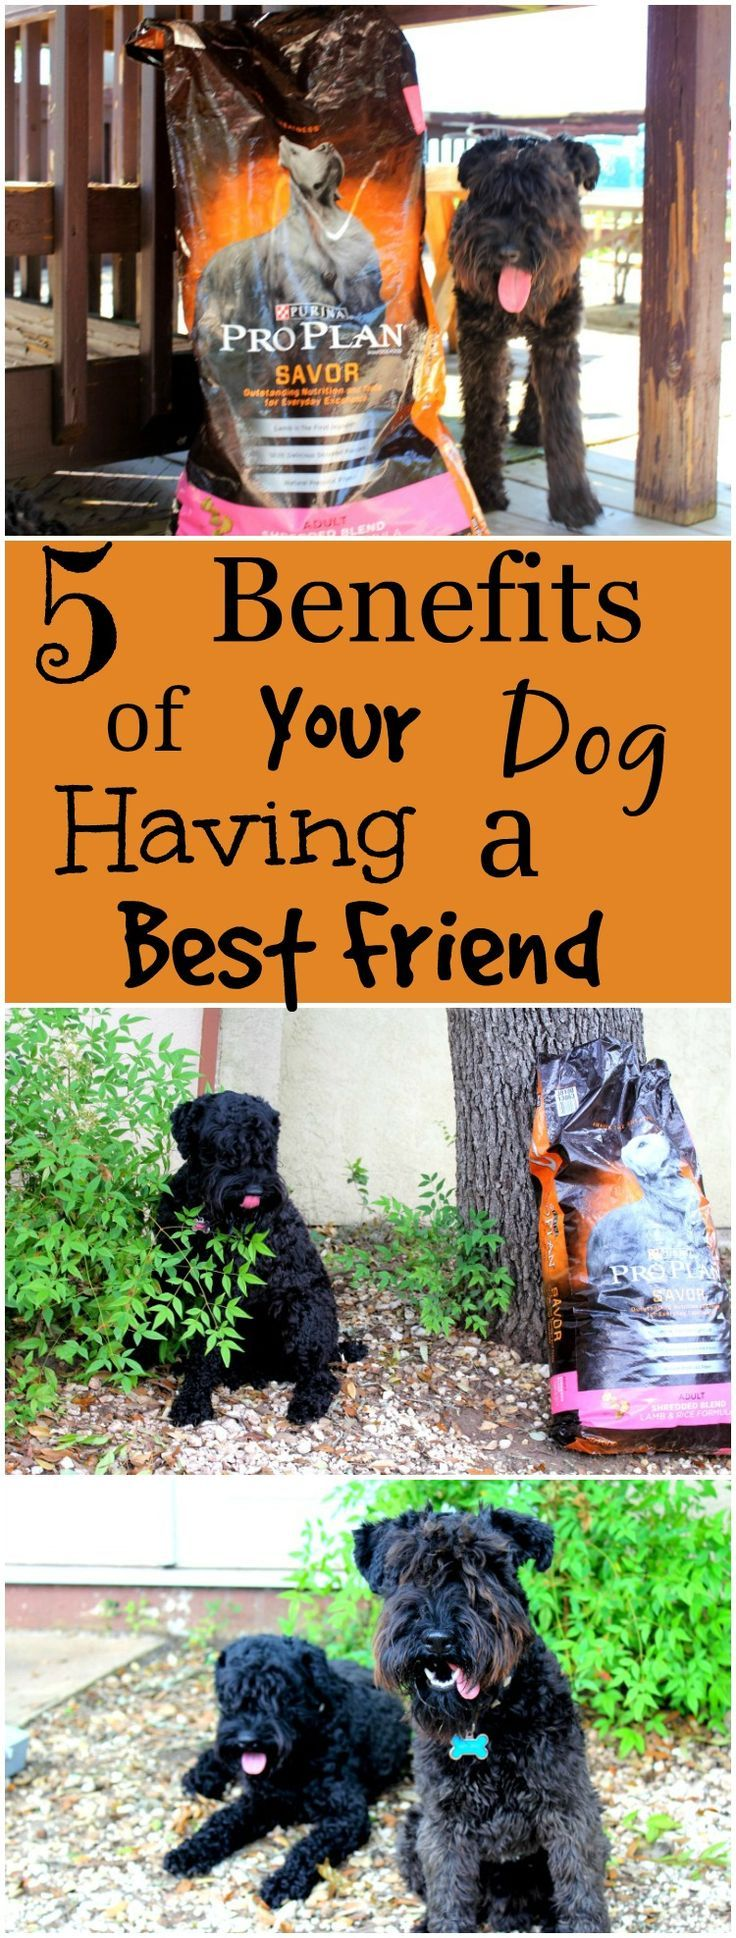 5 Benefits Of Your Dog Having A Best Friend Dogs Pet Care Tips Pet Insurance Reviews